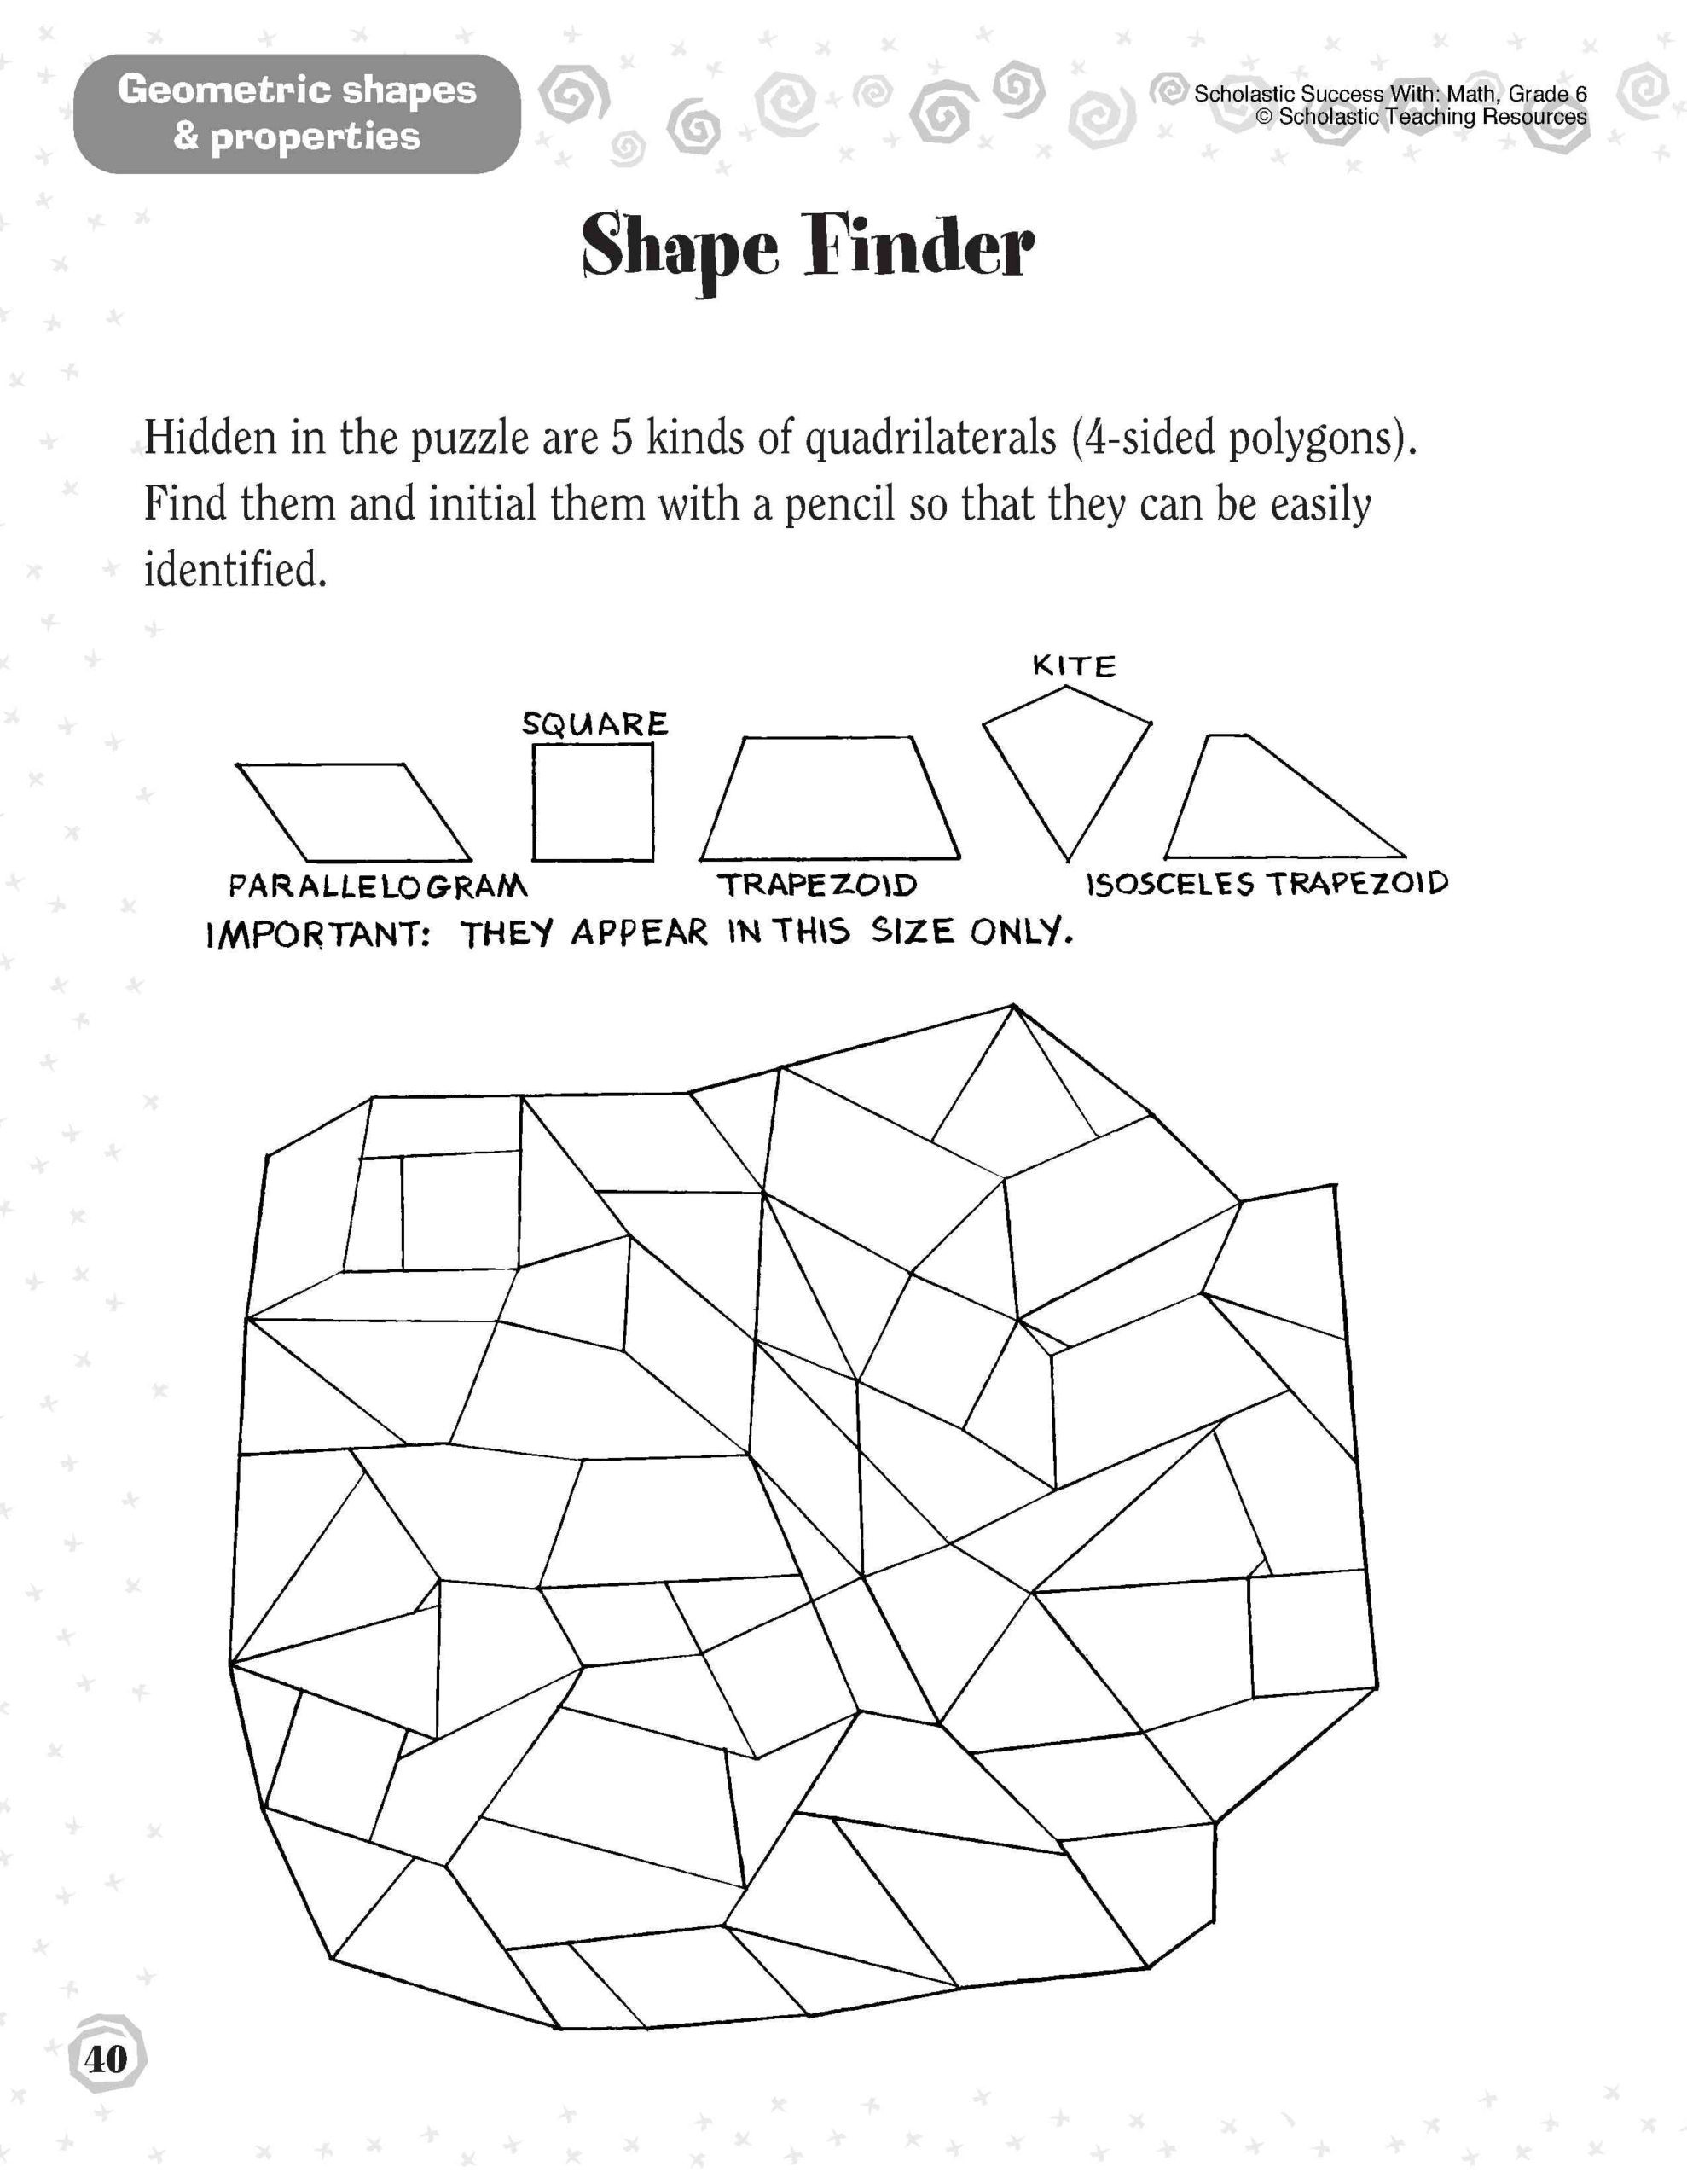 Cross Section Worksheet 7th Grade Addition Practice Worksheets Www Greatschools org Worksheets